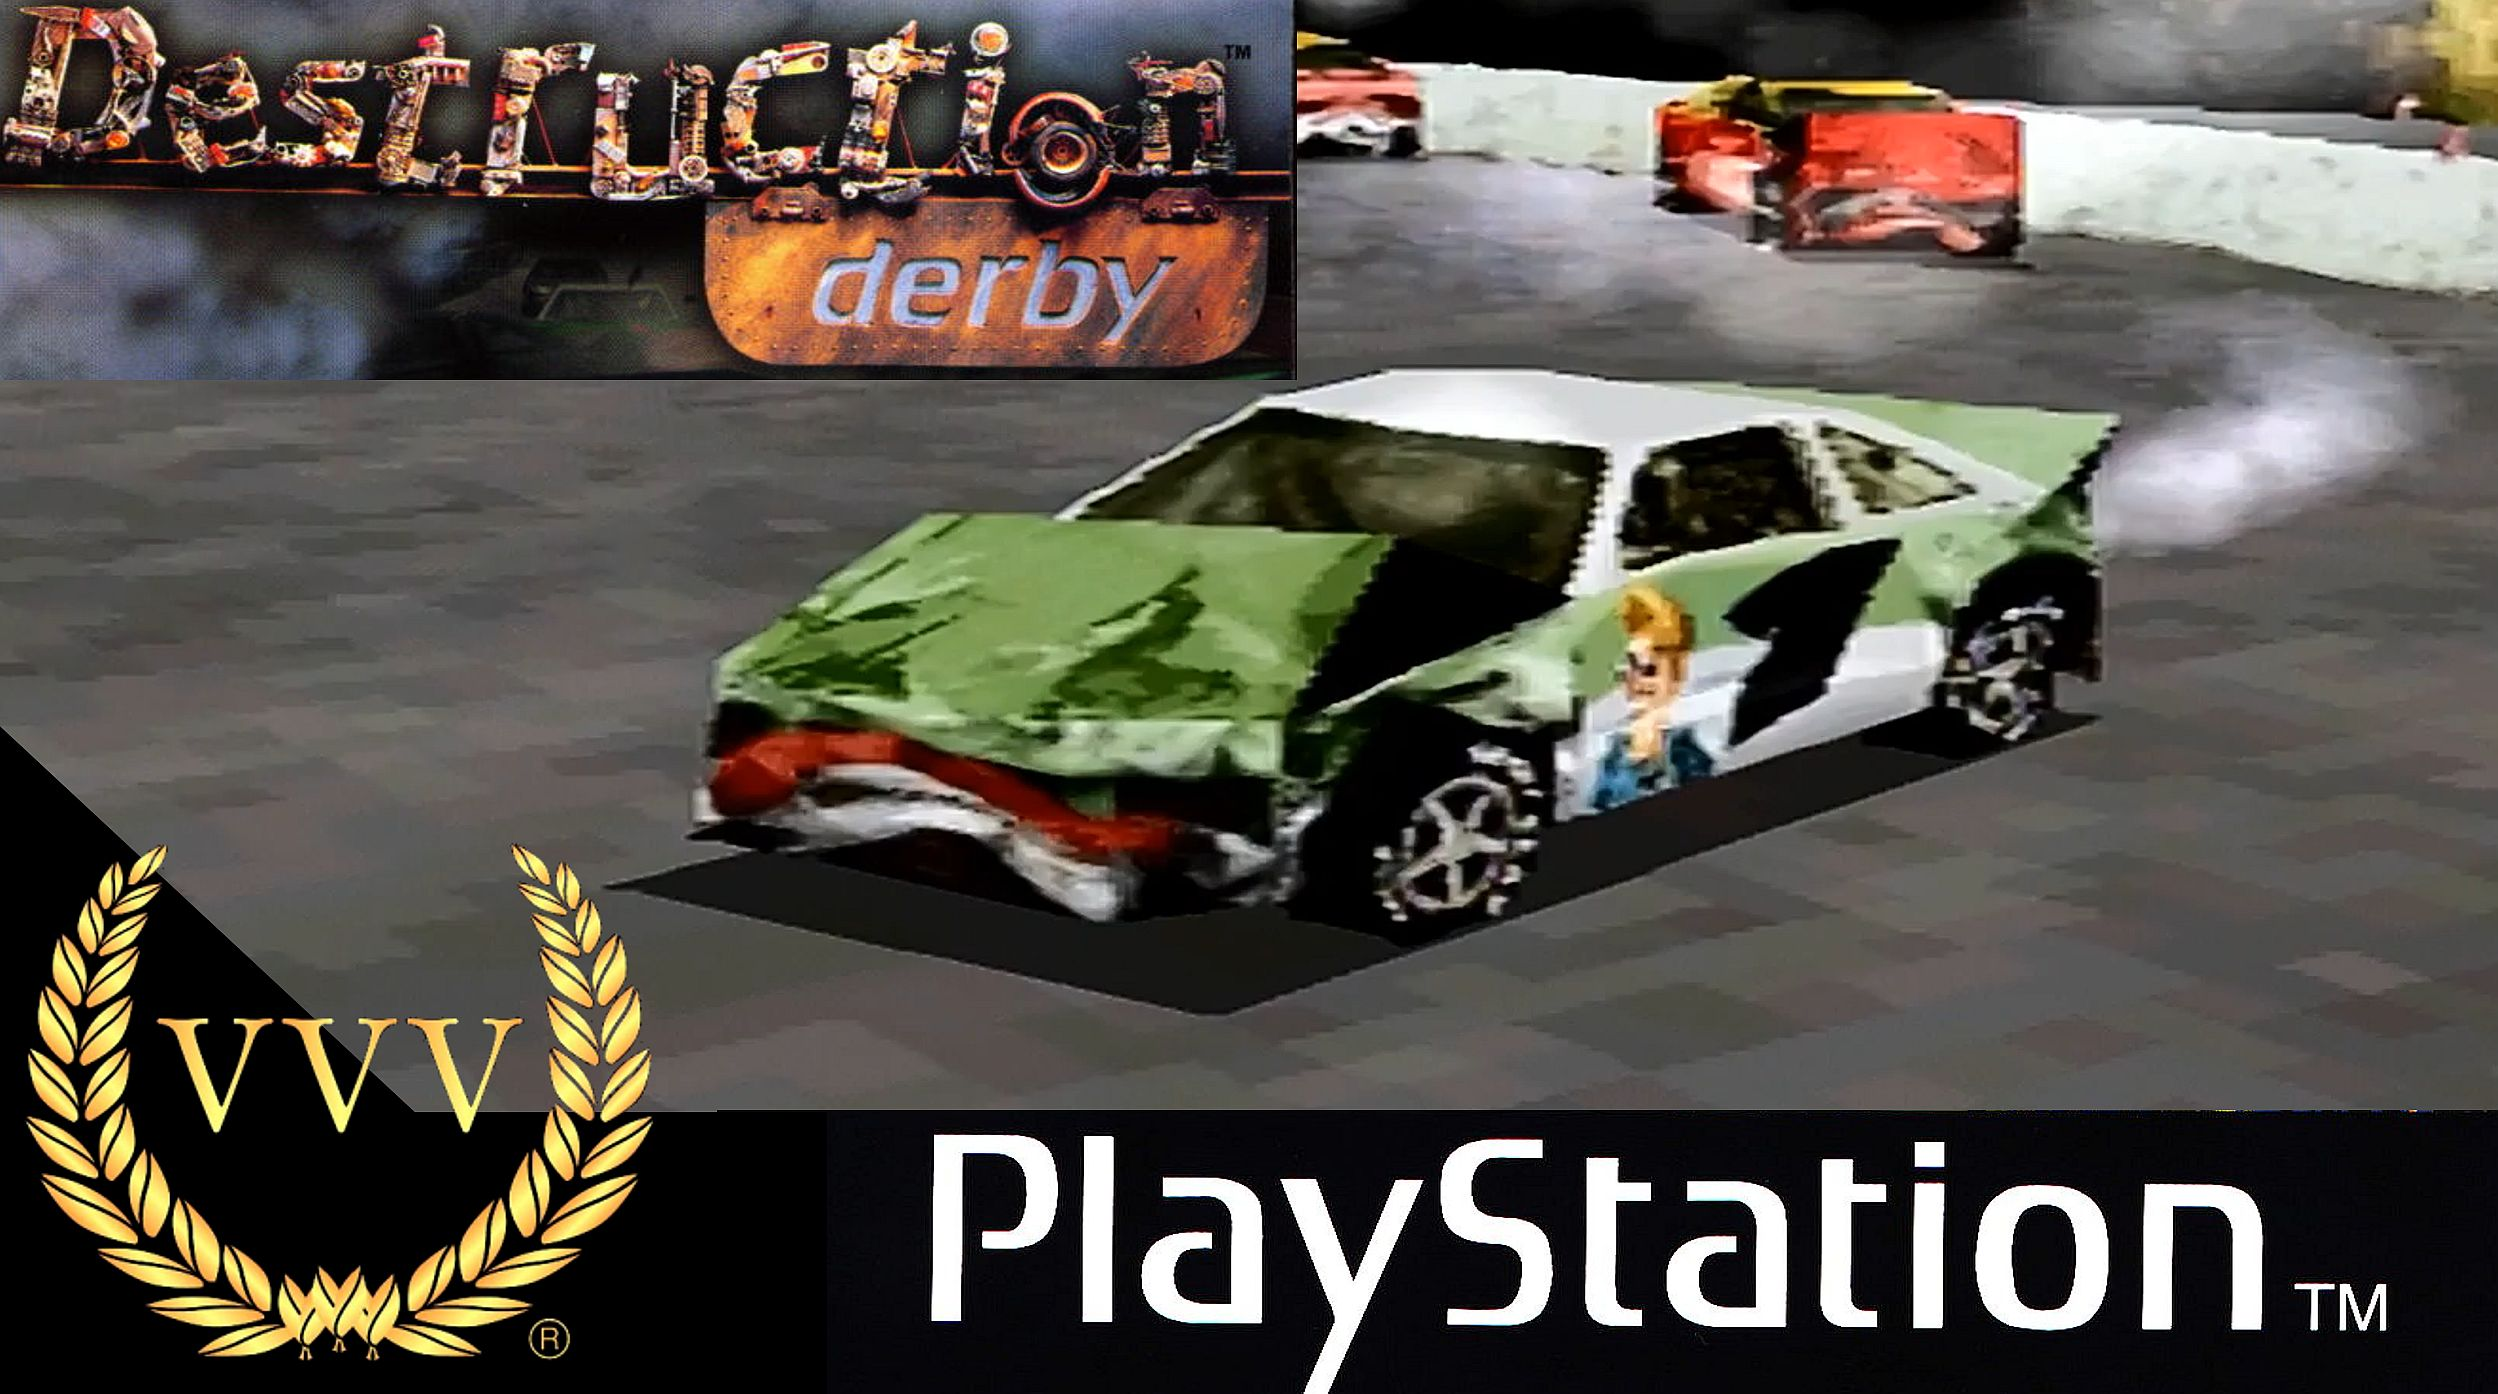 Revisiting the PlayStation 1 classic Destruction Derby